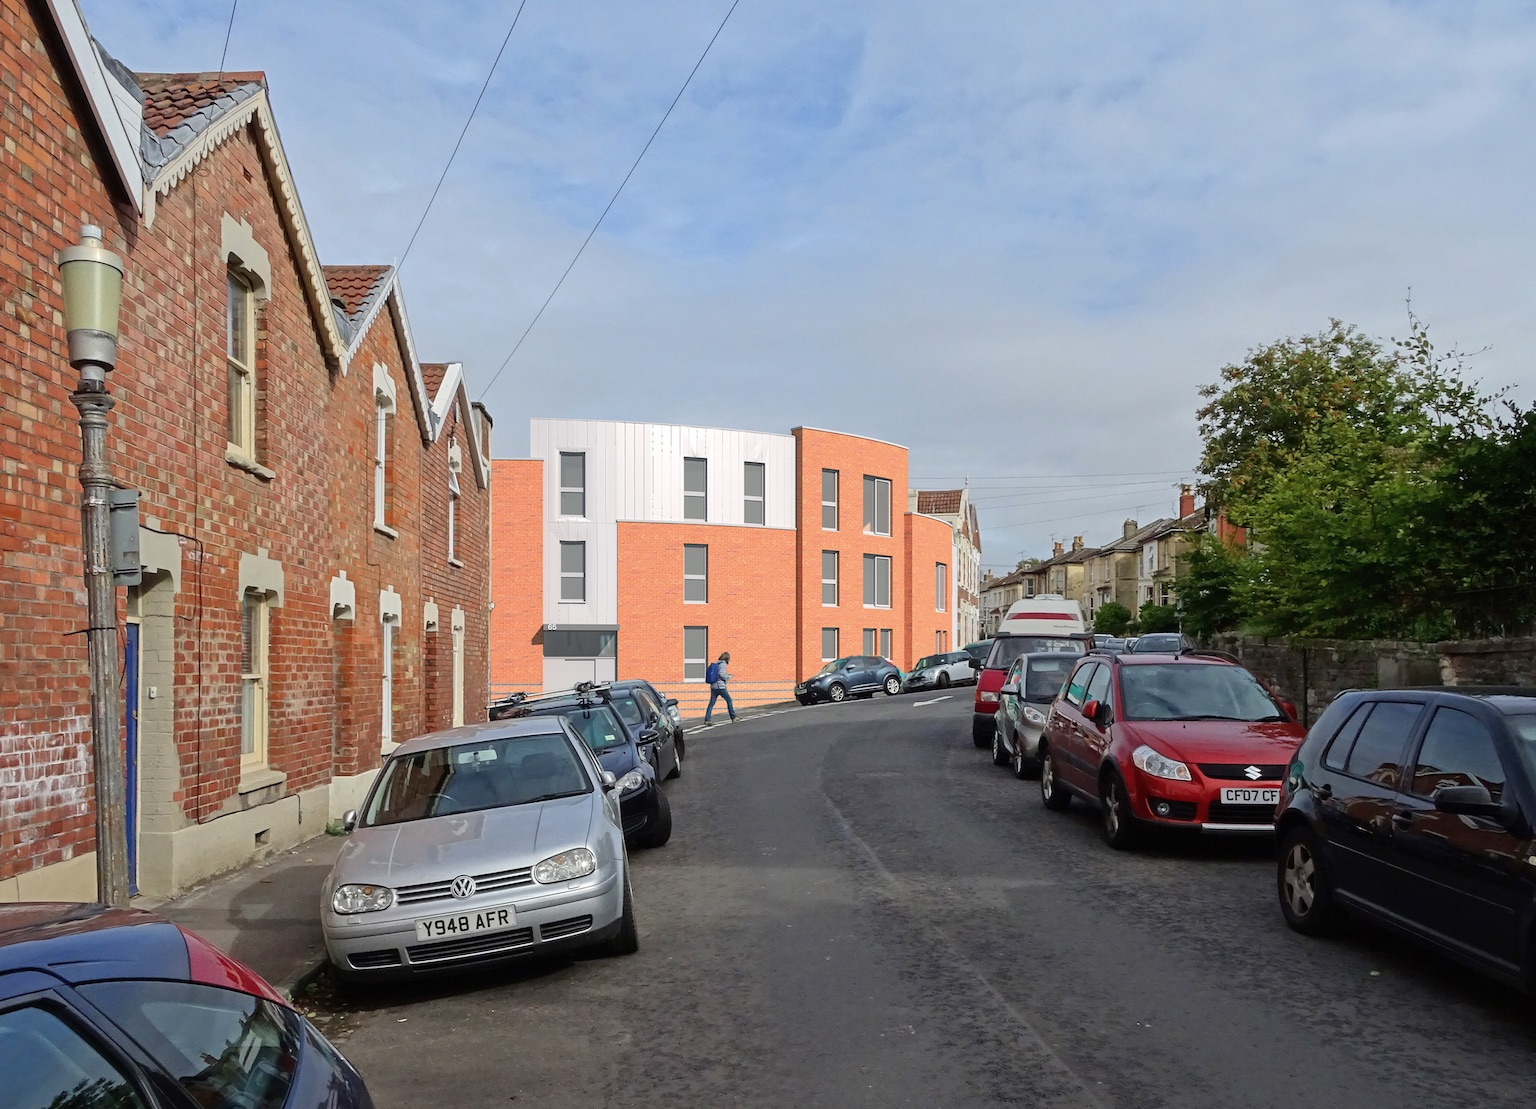 Planning permission for new infill building